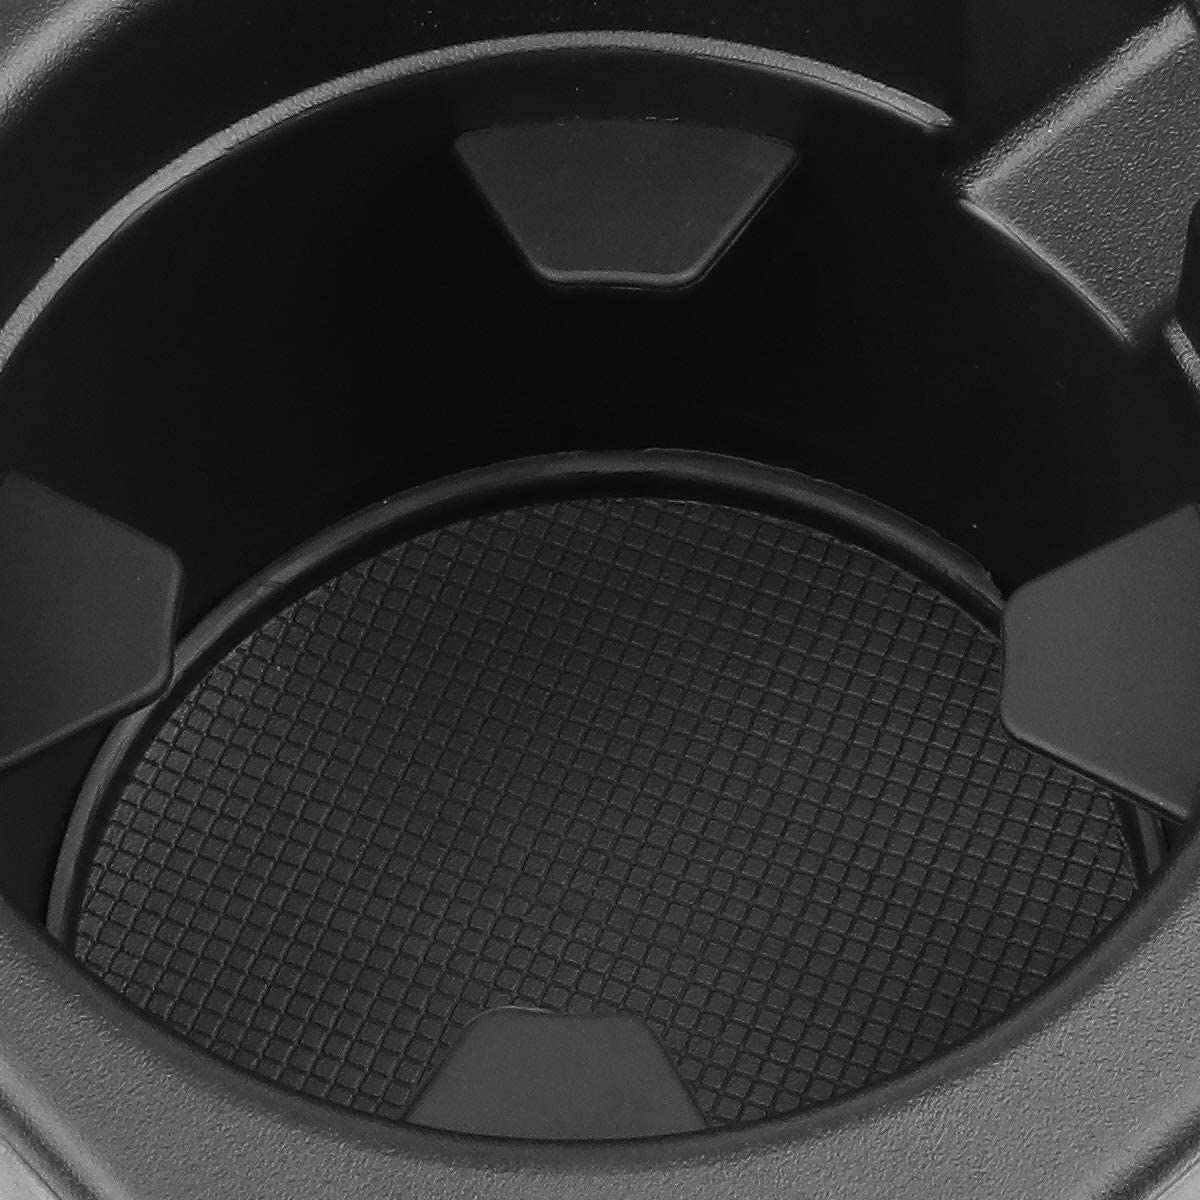 DNA Motoring ZTL-Y-0049 Front Center Floor Console Cup Holder Inserts Replacement,Black